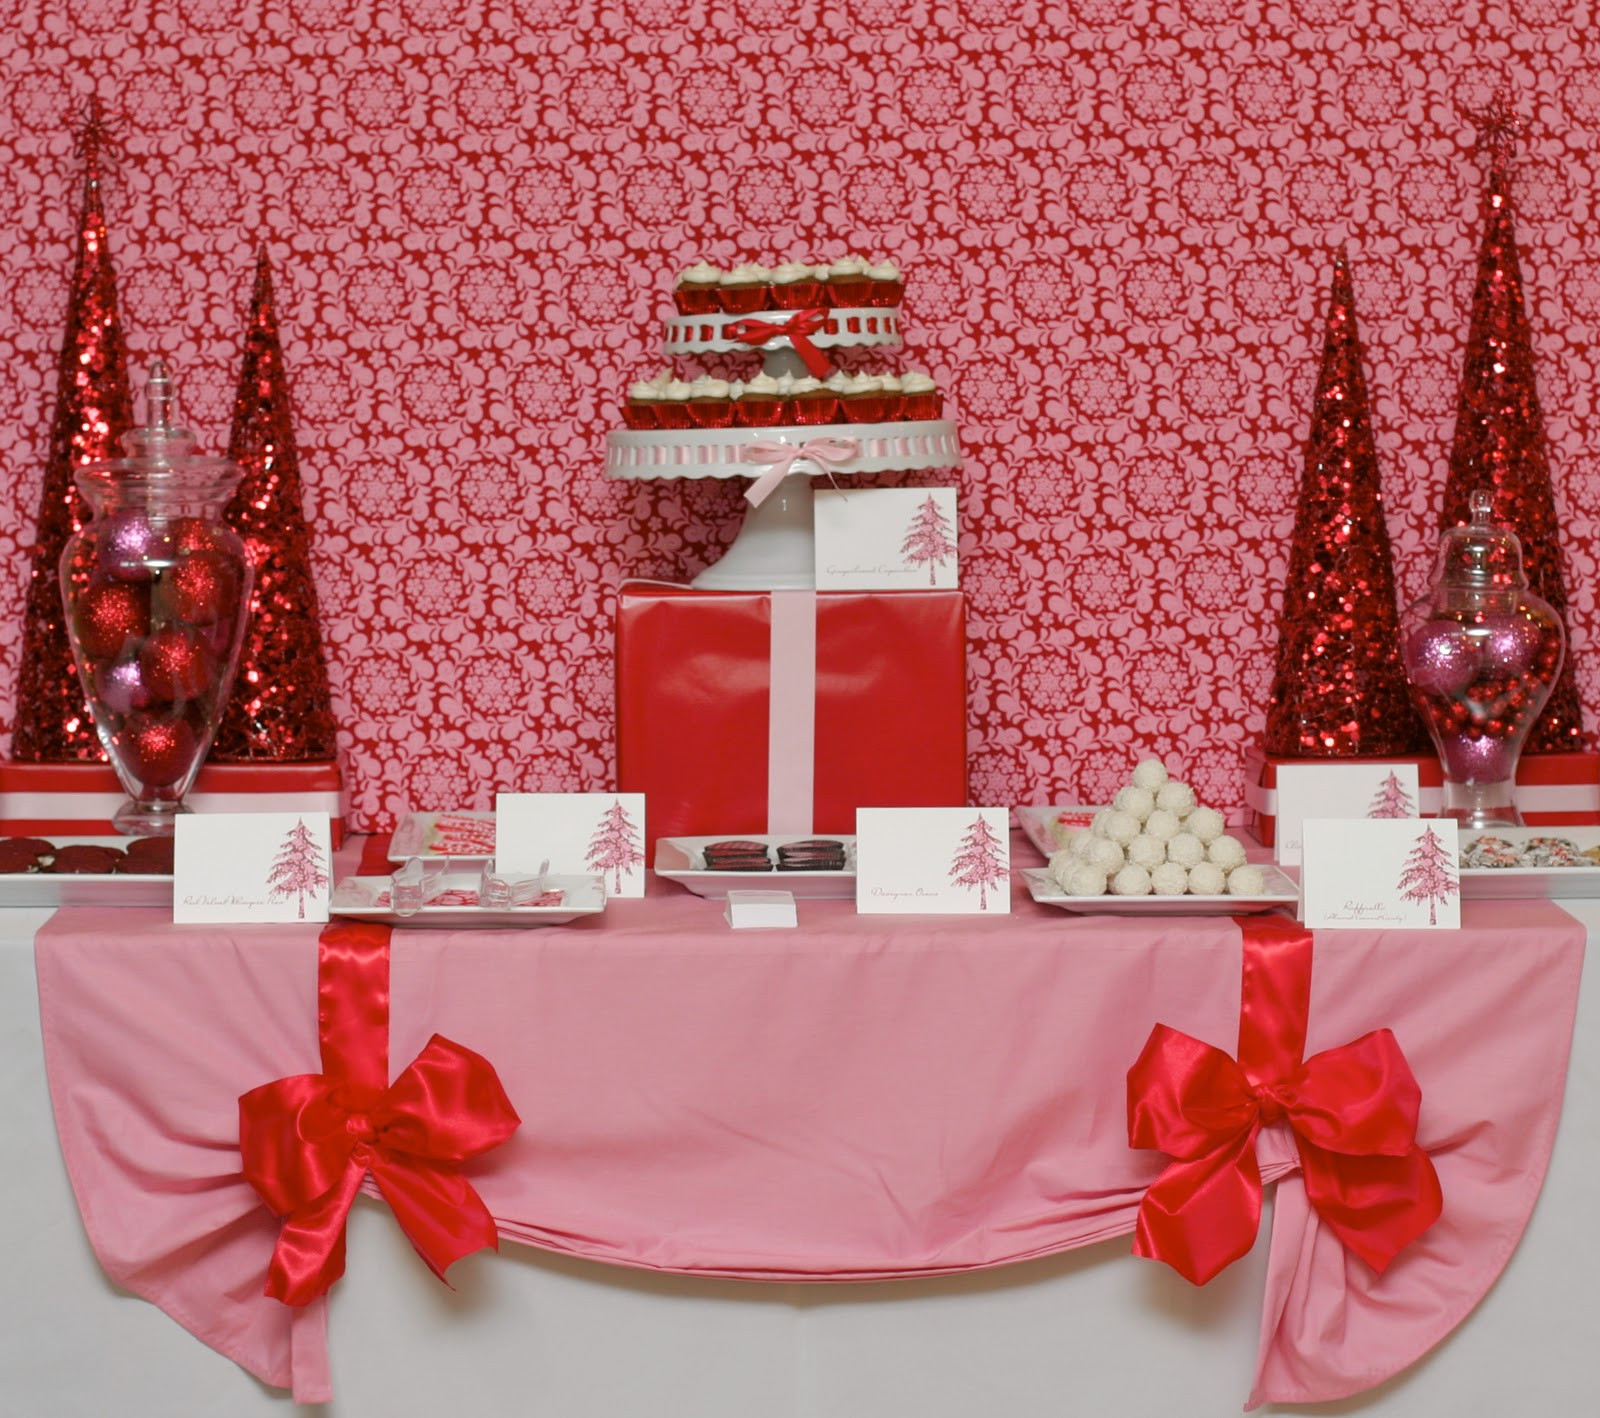 Christmas Dessert Table  CupKate s Event Design Pink and Red Holiday Dessert Table